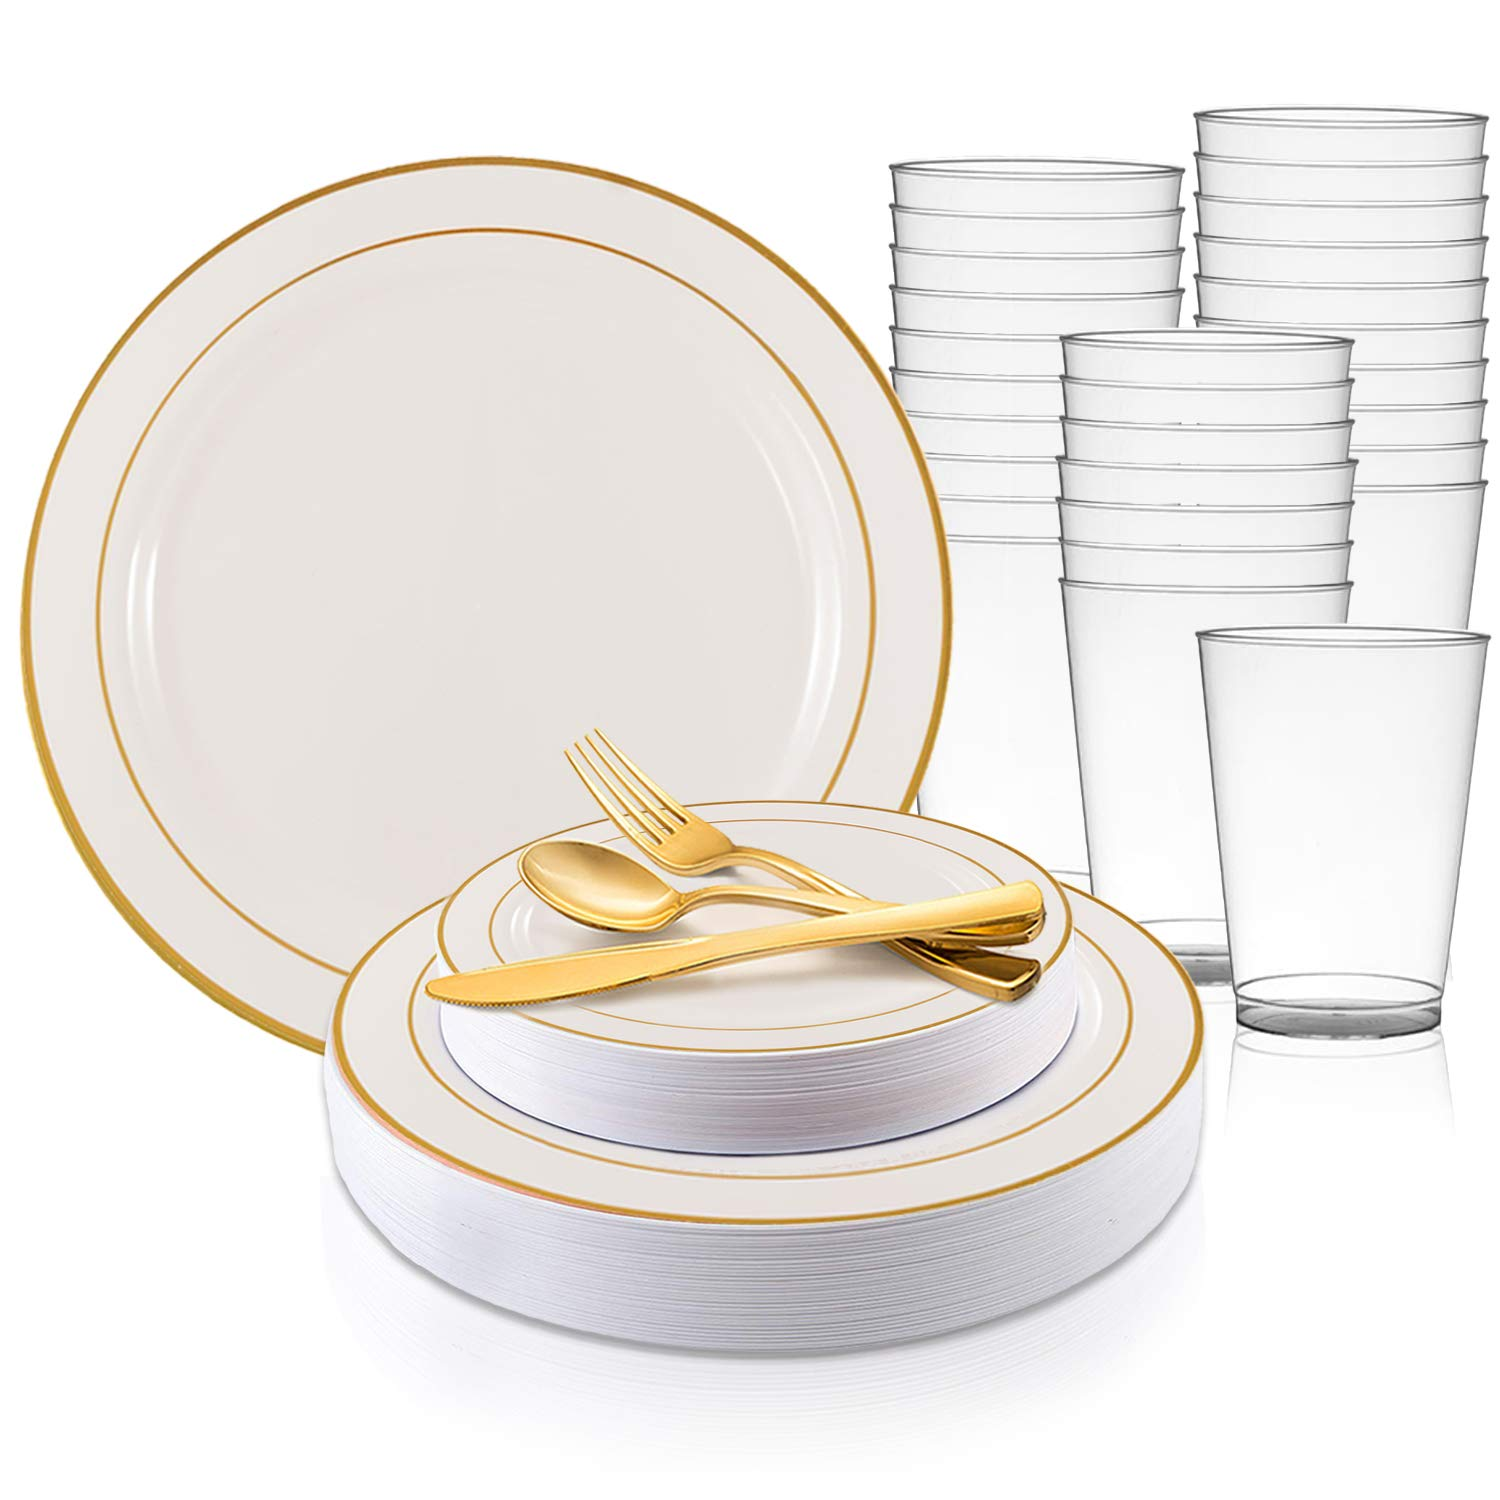 Disposable Plastic Dinnerware Set for 120 Guests - Includes Fancy White Dinner Plates w/Gold Rim, Dessert/Salad Plates, Silverware Set/Cutlery & Cups For Wedding, Birthday Party & Other Occasions